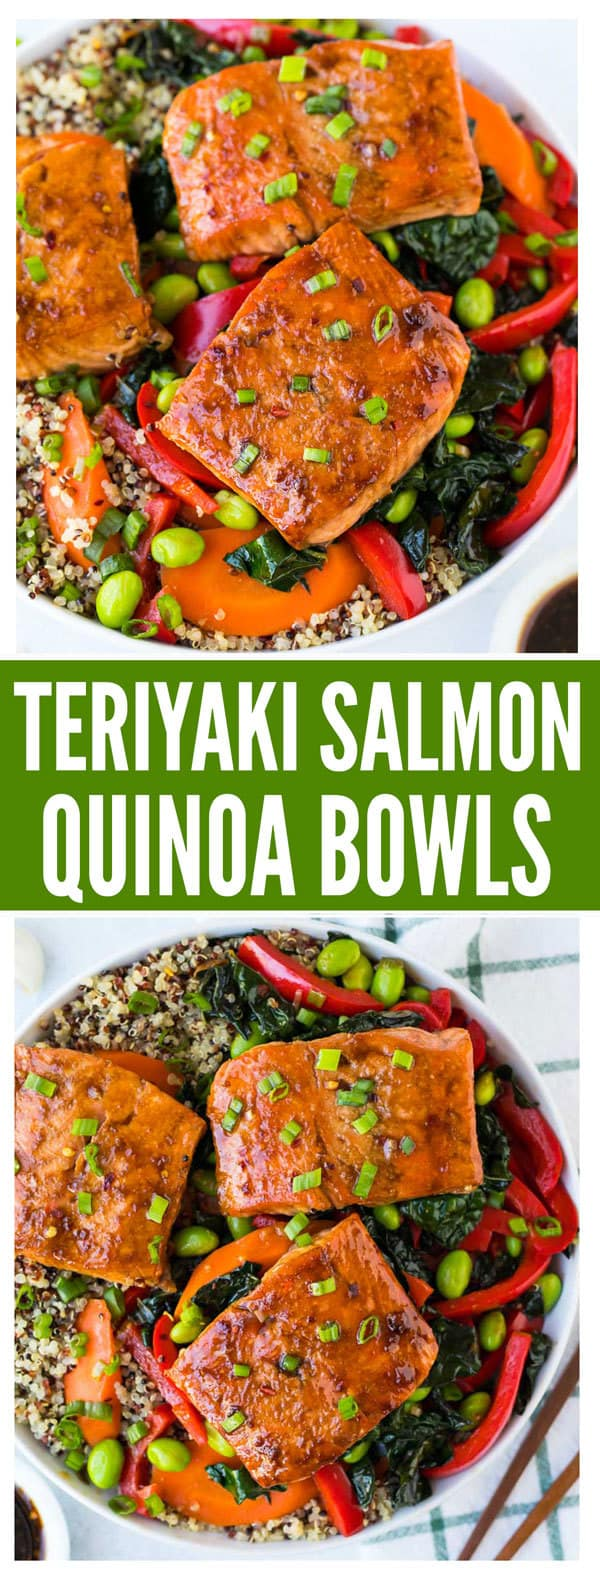 Teriyaki Salmon Bowl with Quinoa, Kale, and Fresh Veggies. A quick and easy cooked Asian Buddha bowl that's perfect for healthy lunches, meal prep, and fast dinners! Add avocado or swap any veggies you have on hand. #mealprep #glutenfree #healthy